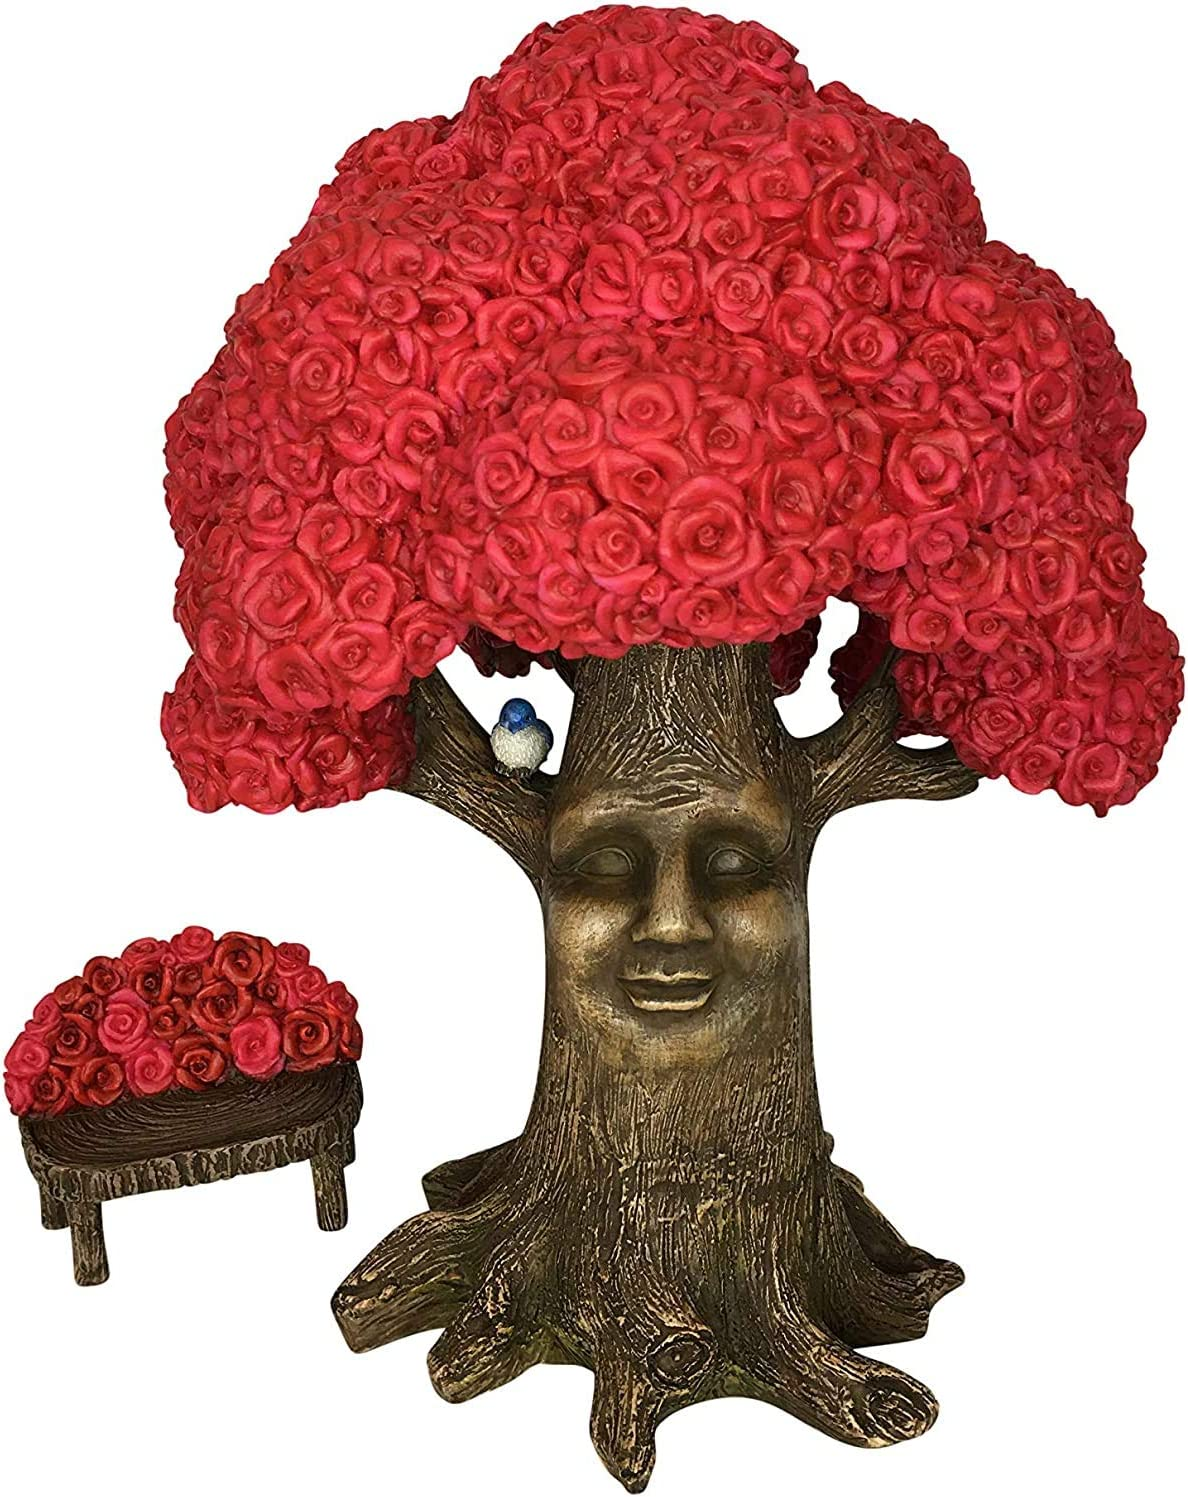 GlitZGlam Fairy Garden Miniature Tree: Mrs. Rose The Pink Rose Tree of Azar (9 Inch Tall) for The Garden Fairies and Gnomes - from The Beautiful Azarian Collection. A Fairy Garden Accessory